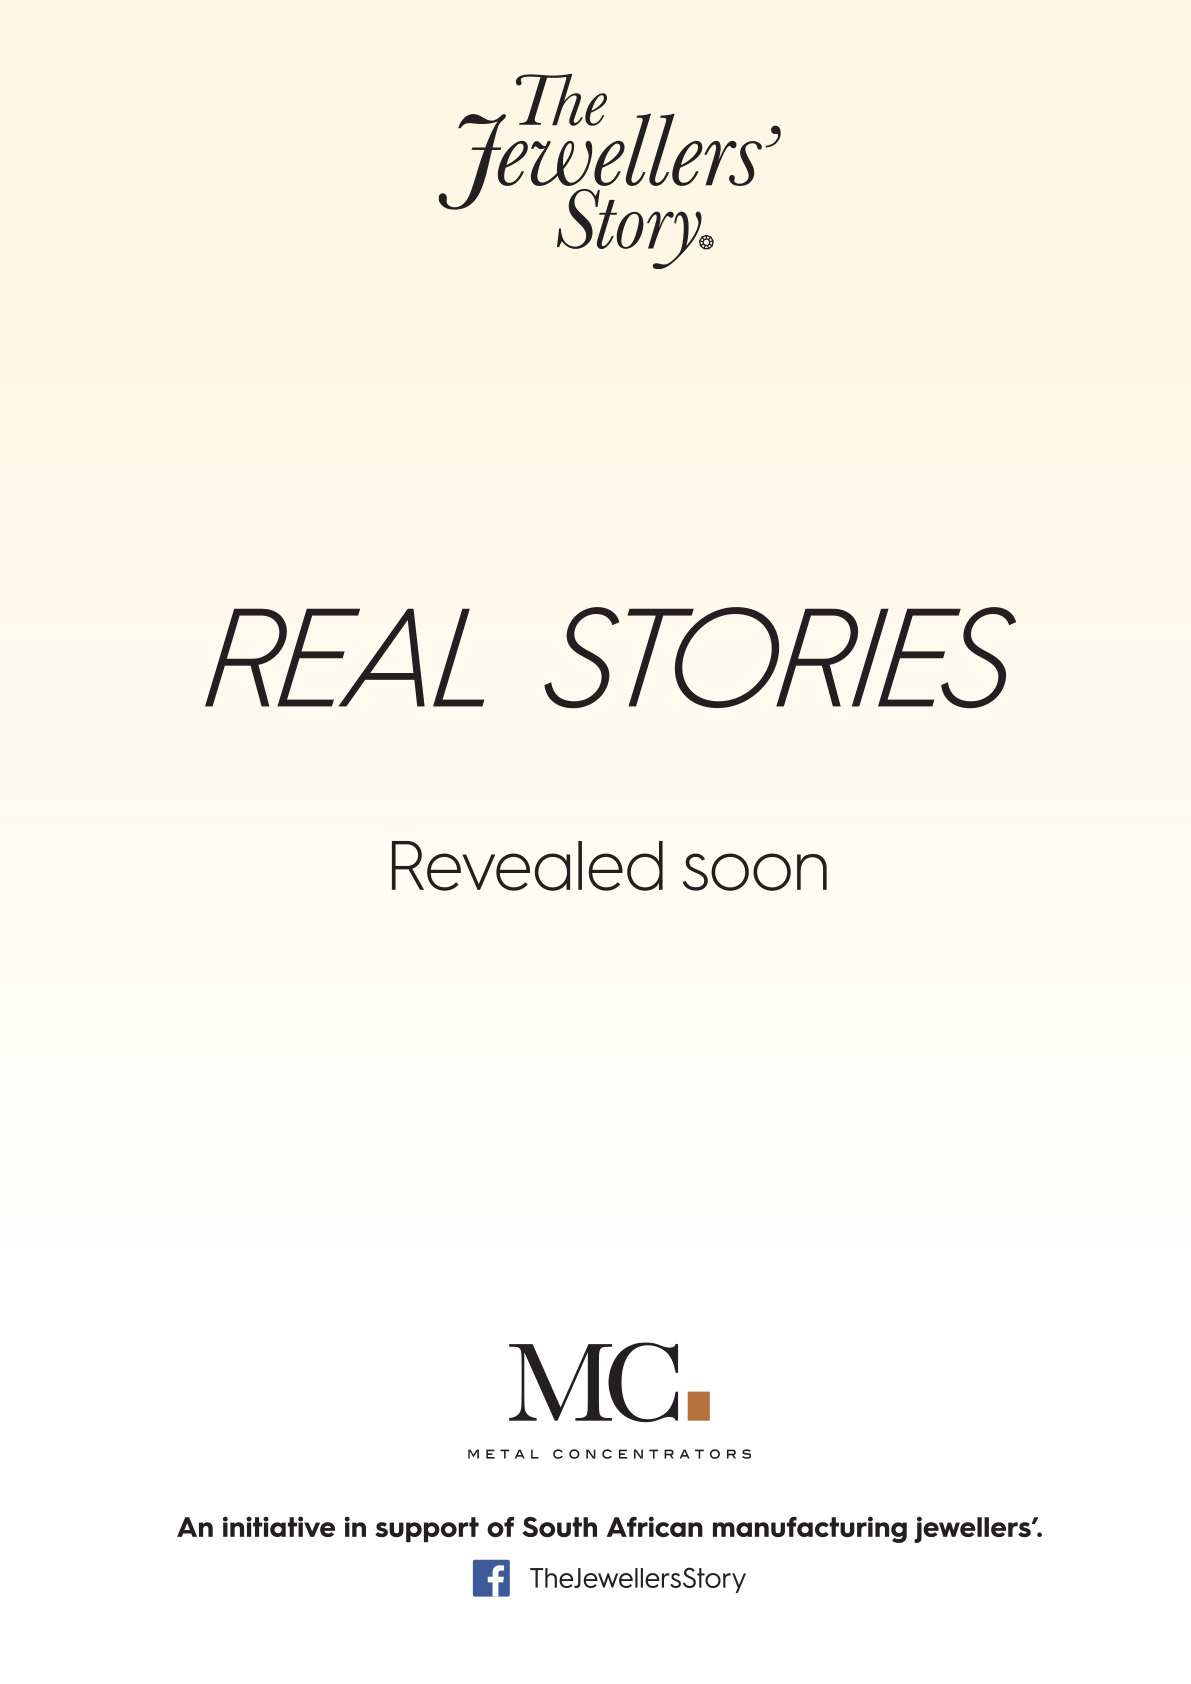 Real Stories coming soon